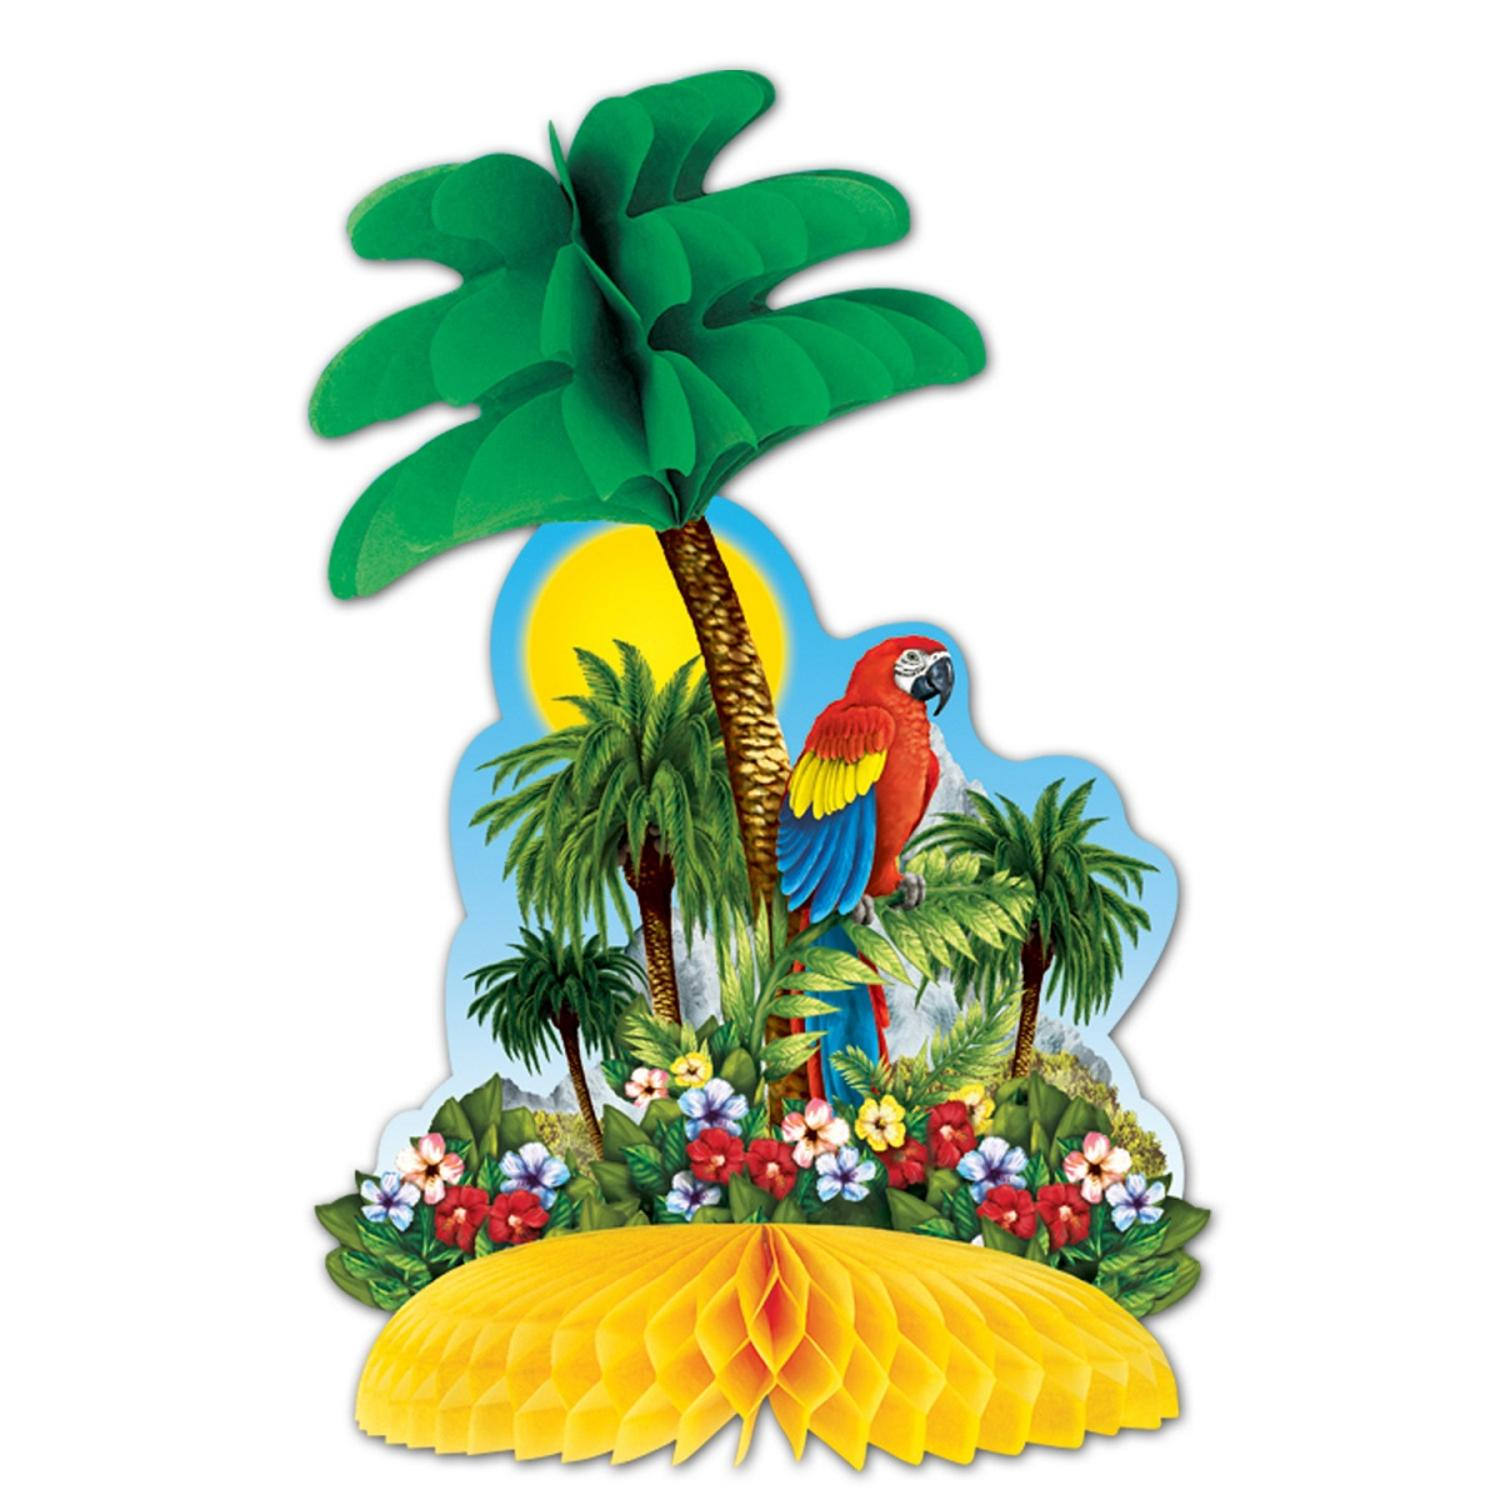 Club Pack of 12 Multi-Colored Tropical Island Honeycomb Tissue Centerpiece Party Decorations 12""